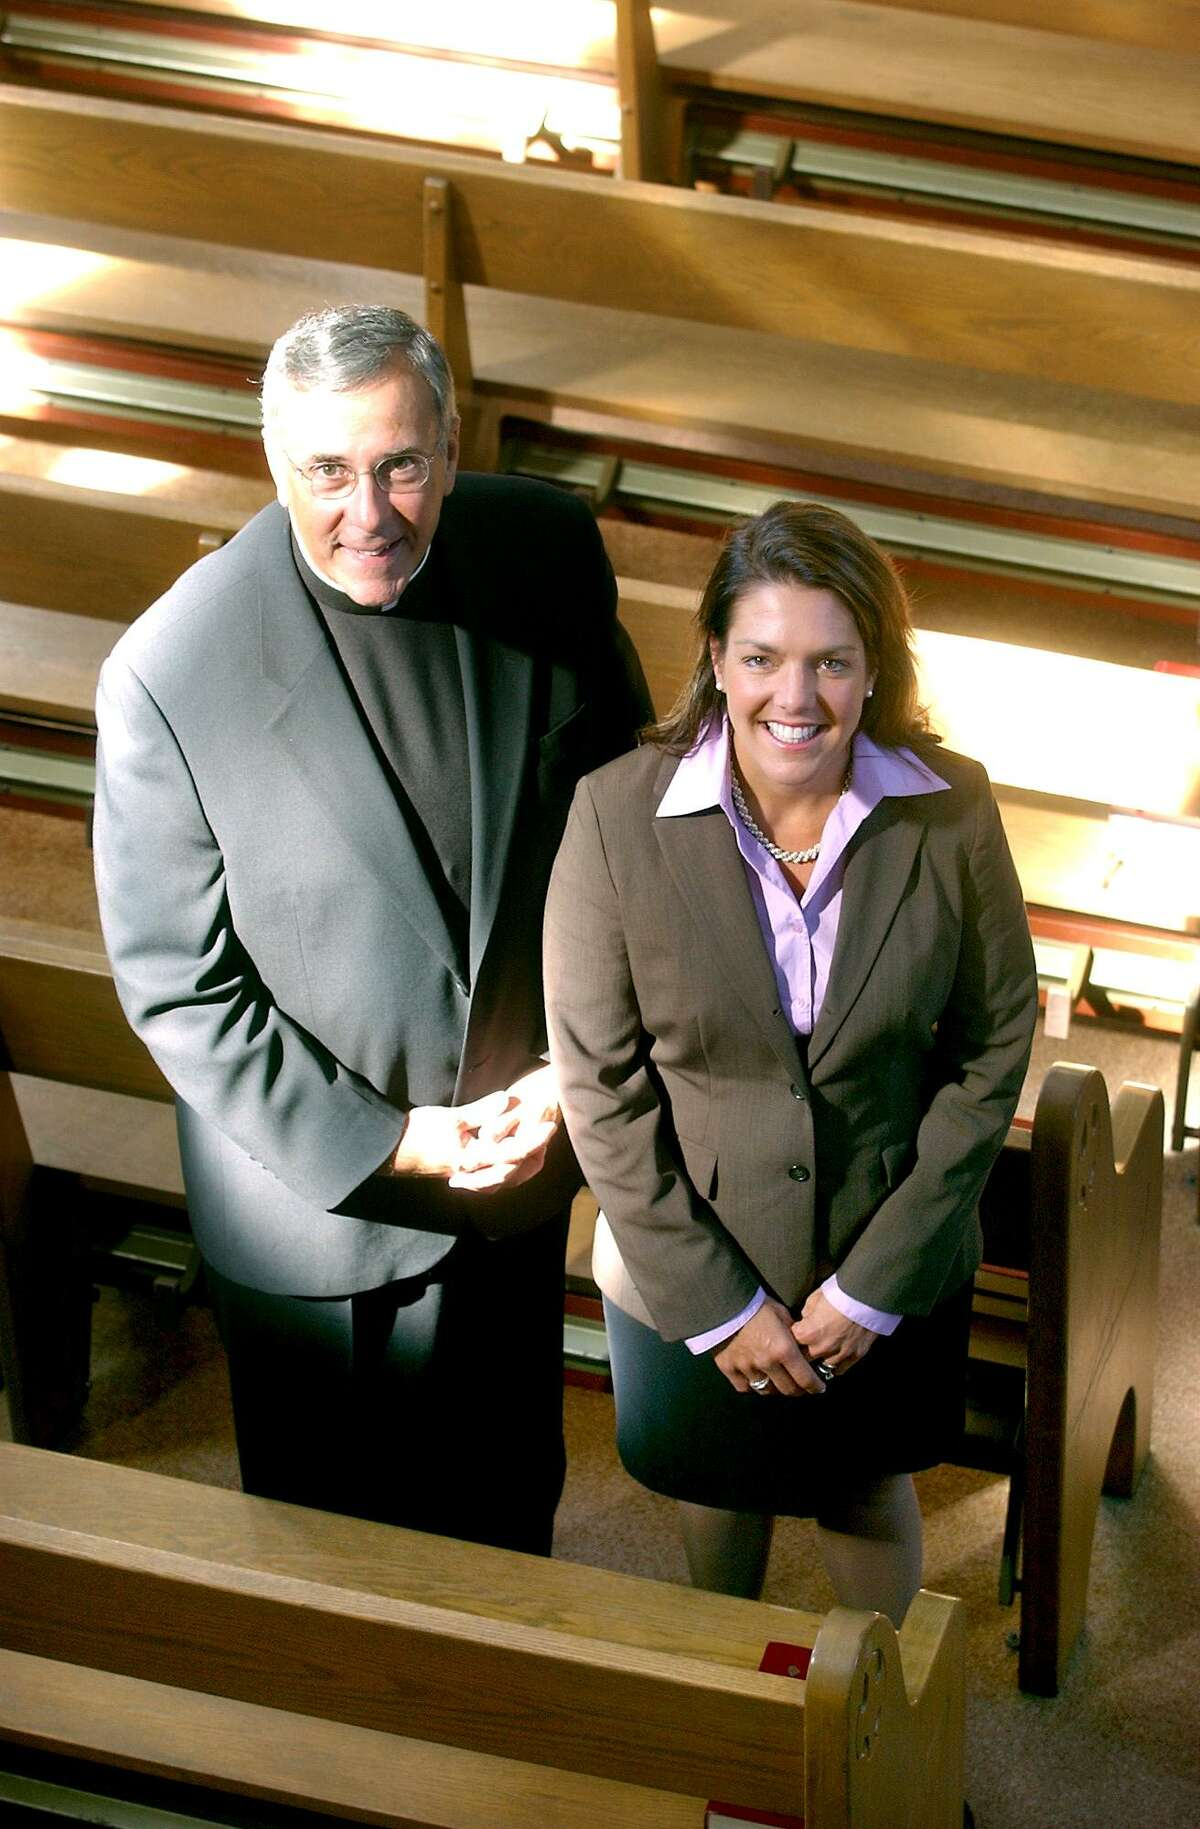 Rev. Robert Beloin with Kerry Robinson at St. Thomas More Catholic Chapel and Center in 2004.